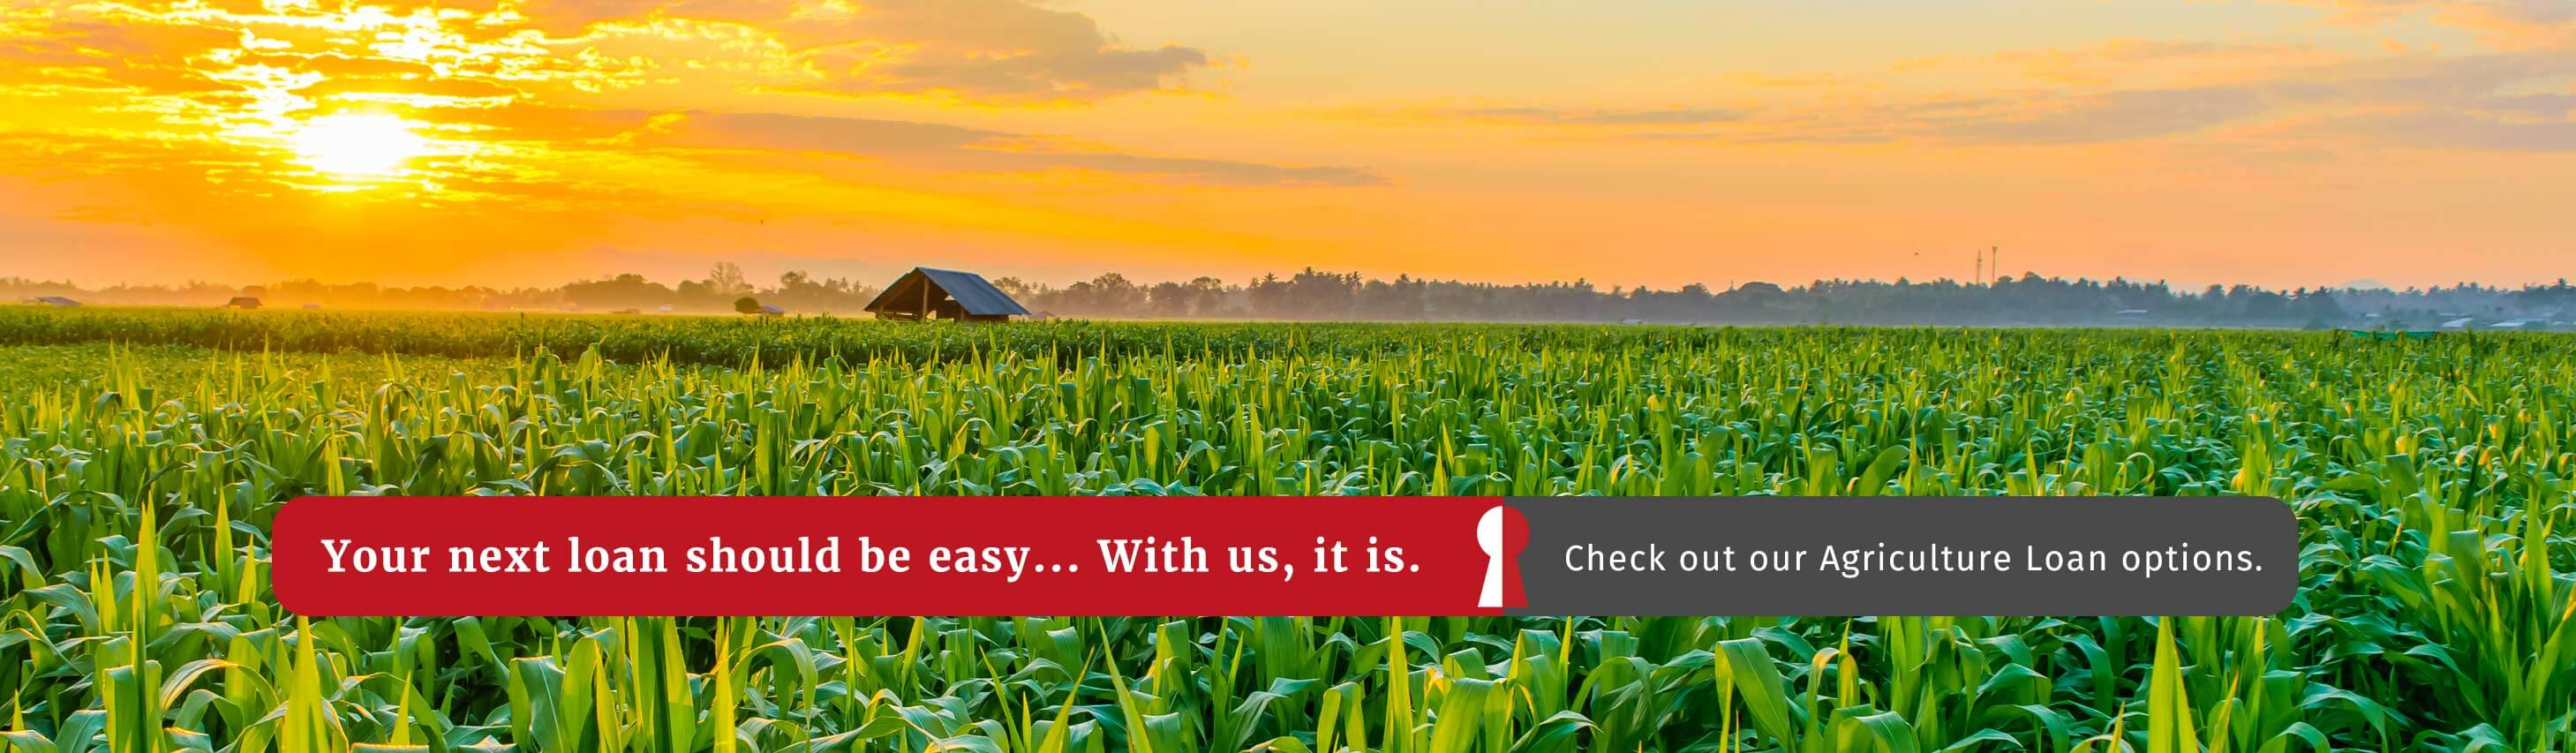 Your next loan should be easy. With us, it is. Check out our agriculture loan options.